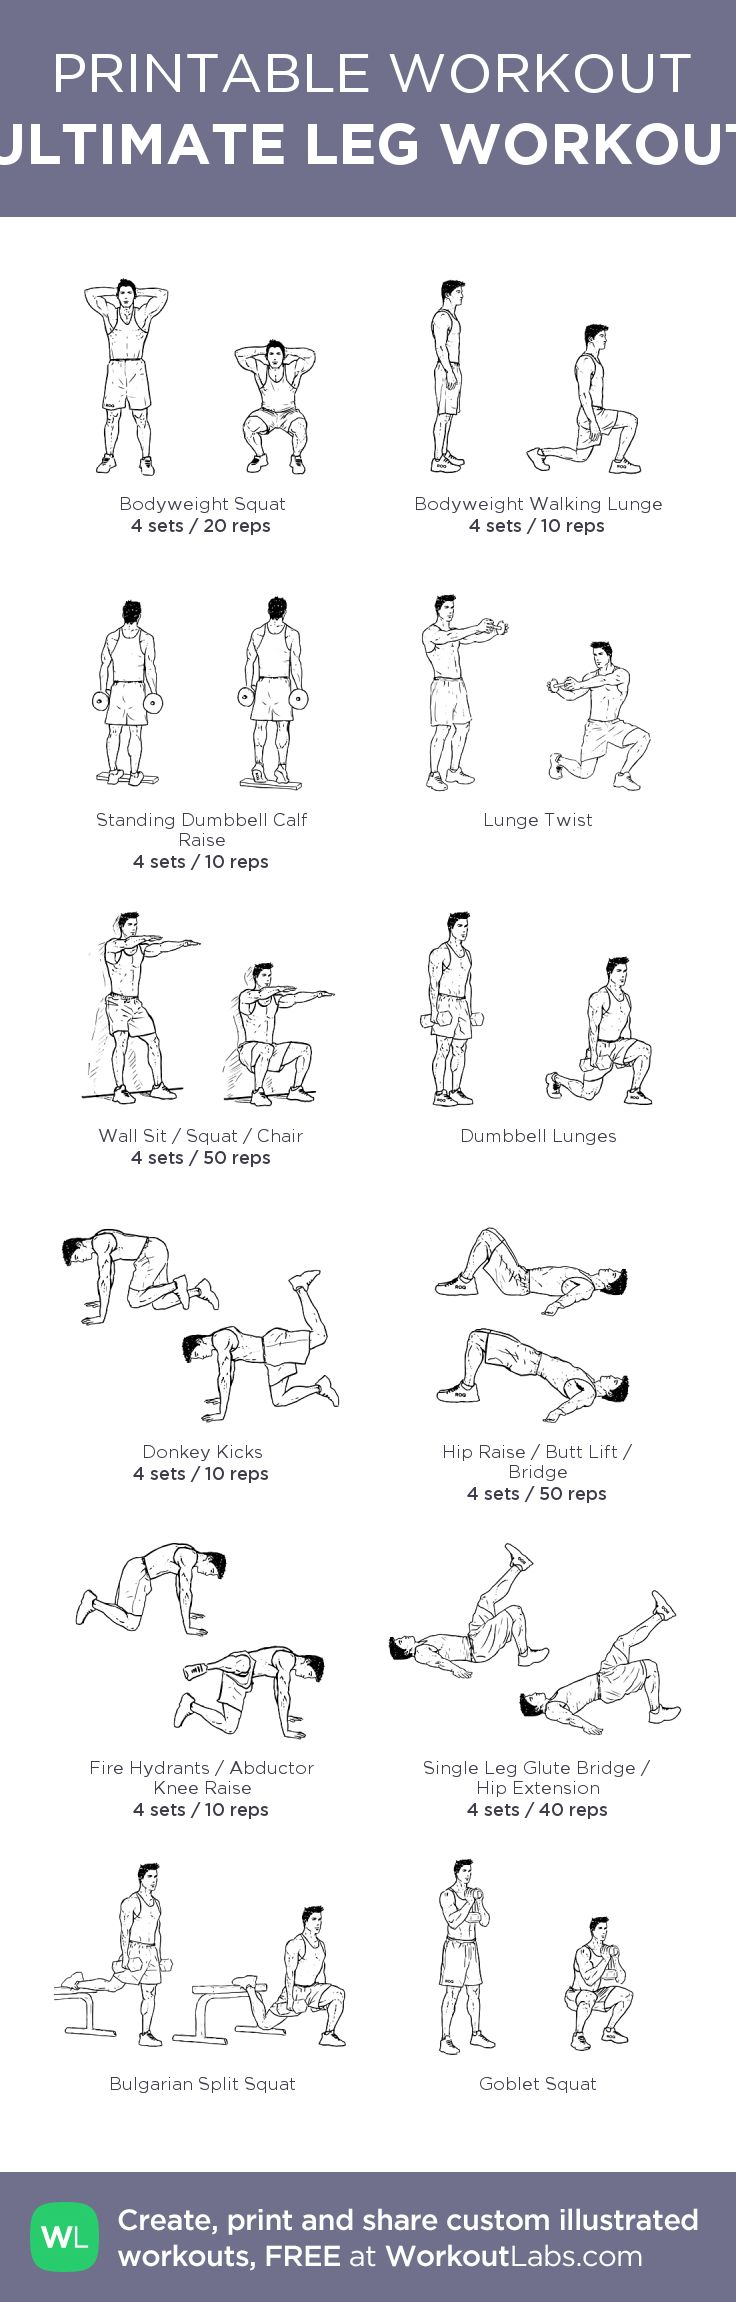 ULTIMATE LEG WORKOUT:my visual workout created at WorkoutLabs.com • Click through to customize and download as a FREE PDF! #customworkout